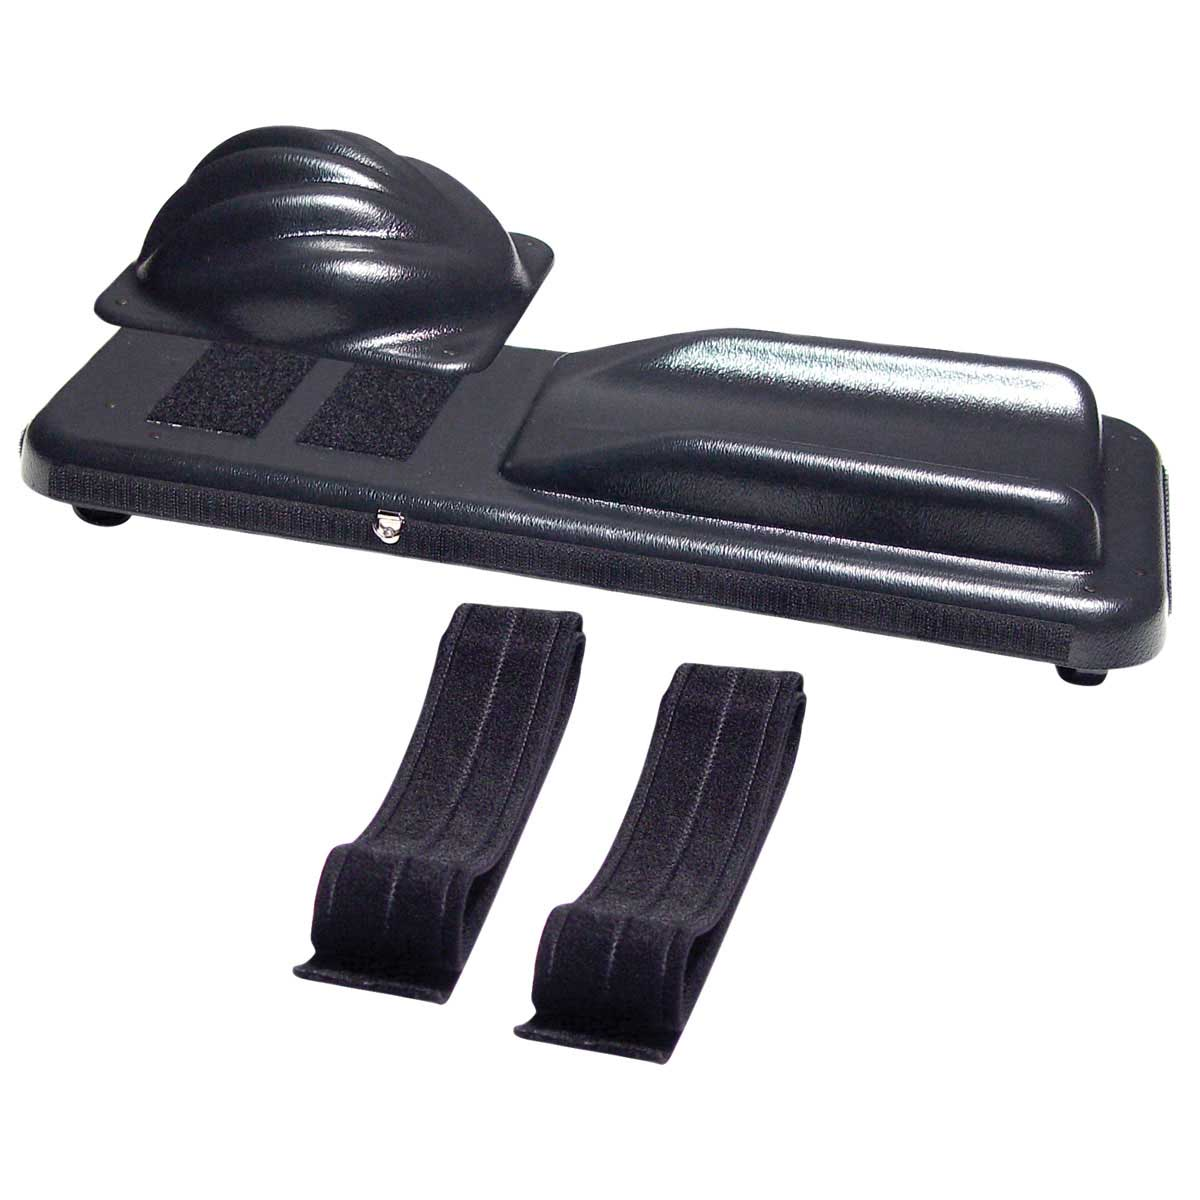 Deluxe Ergo exercise skate with removable hand piece